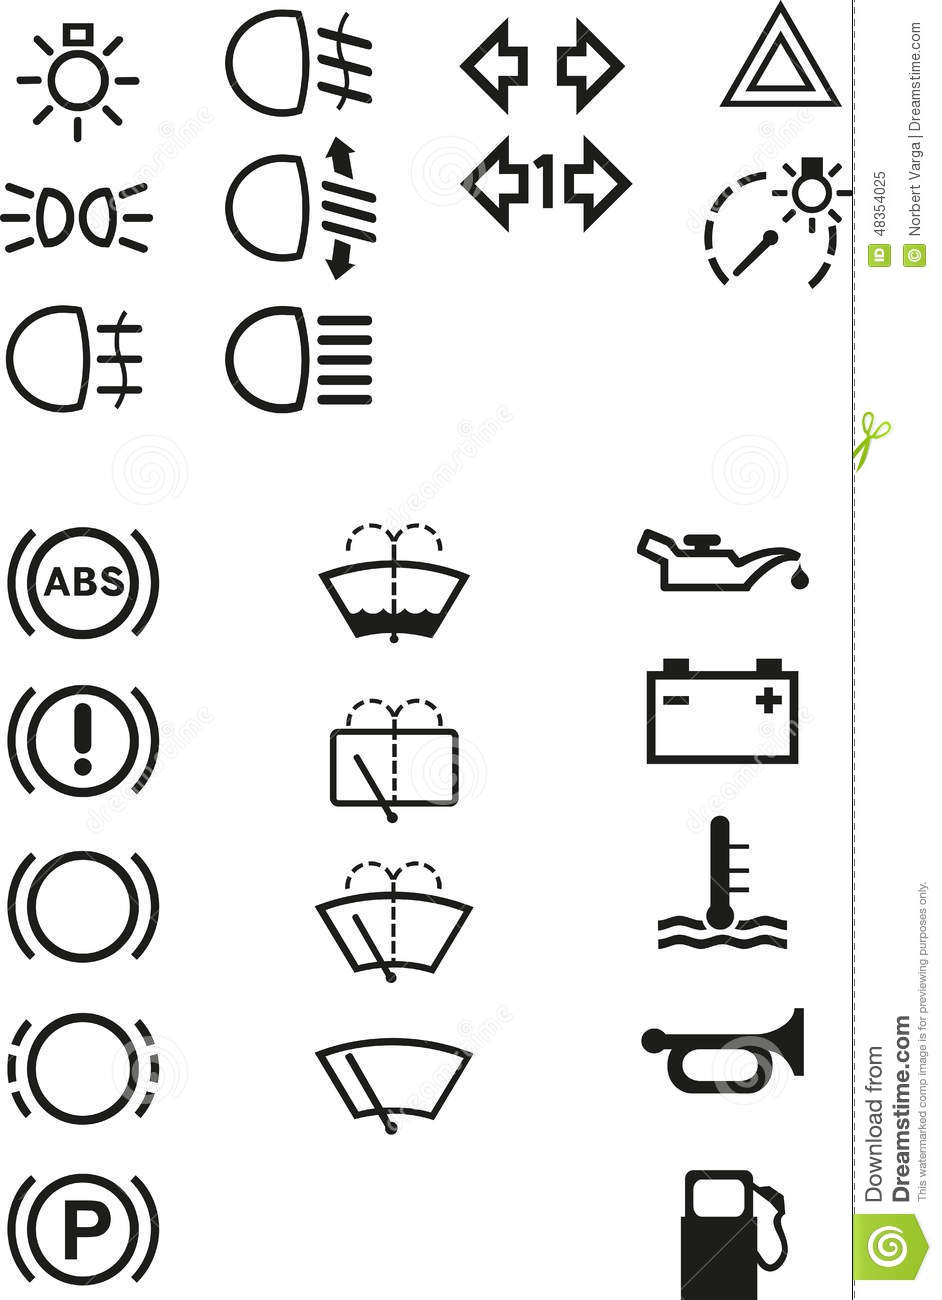 Car dashboard signs stock vector. Illustration of odometer